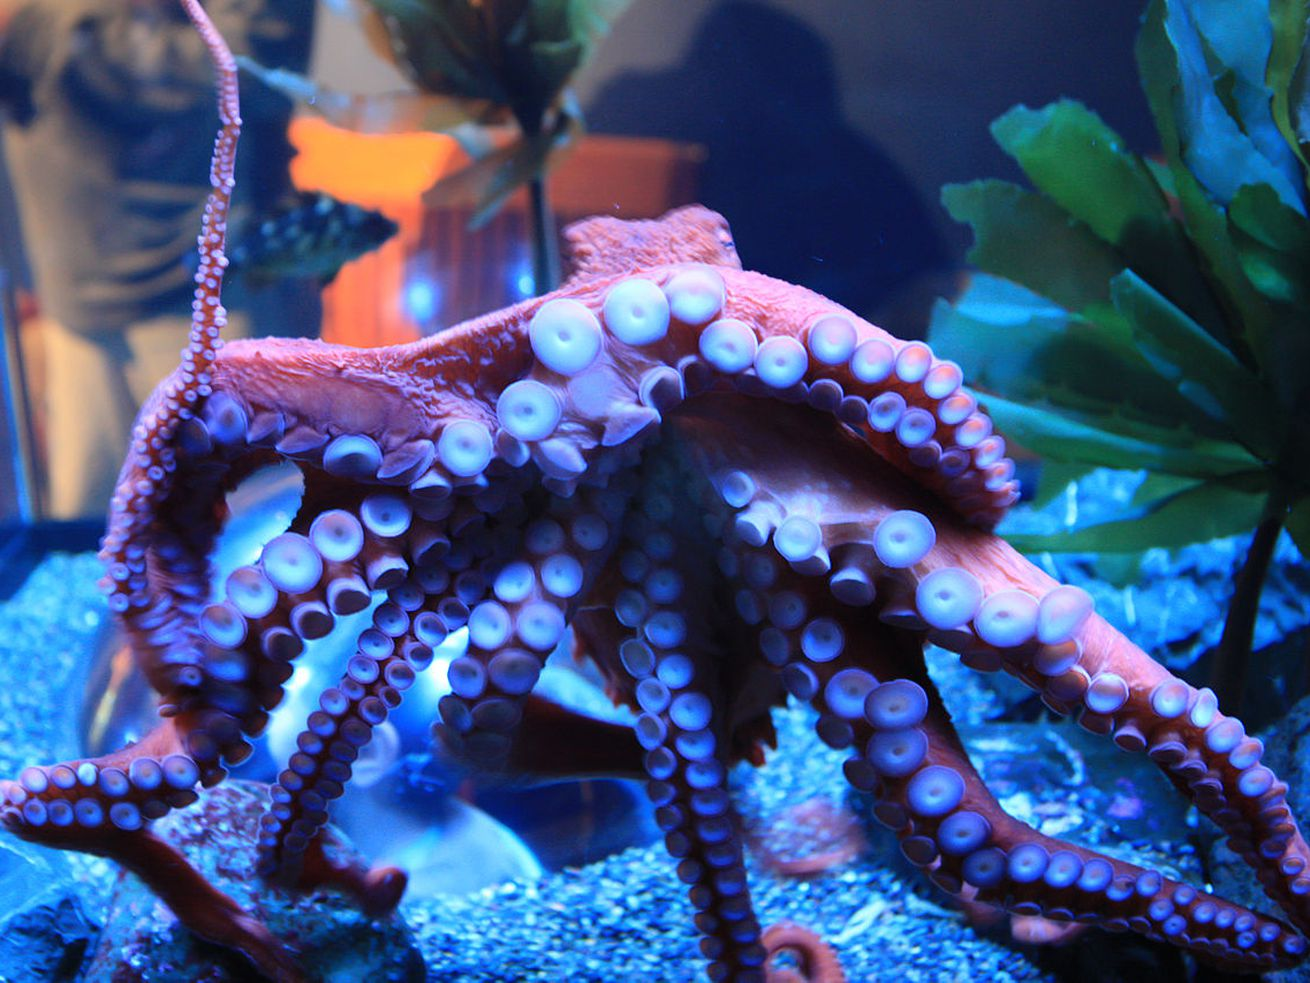 Octopus need enrichment to thrive in captivity.